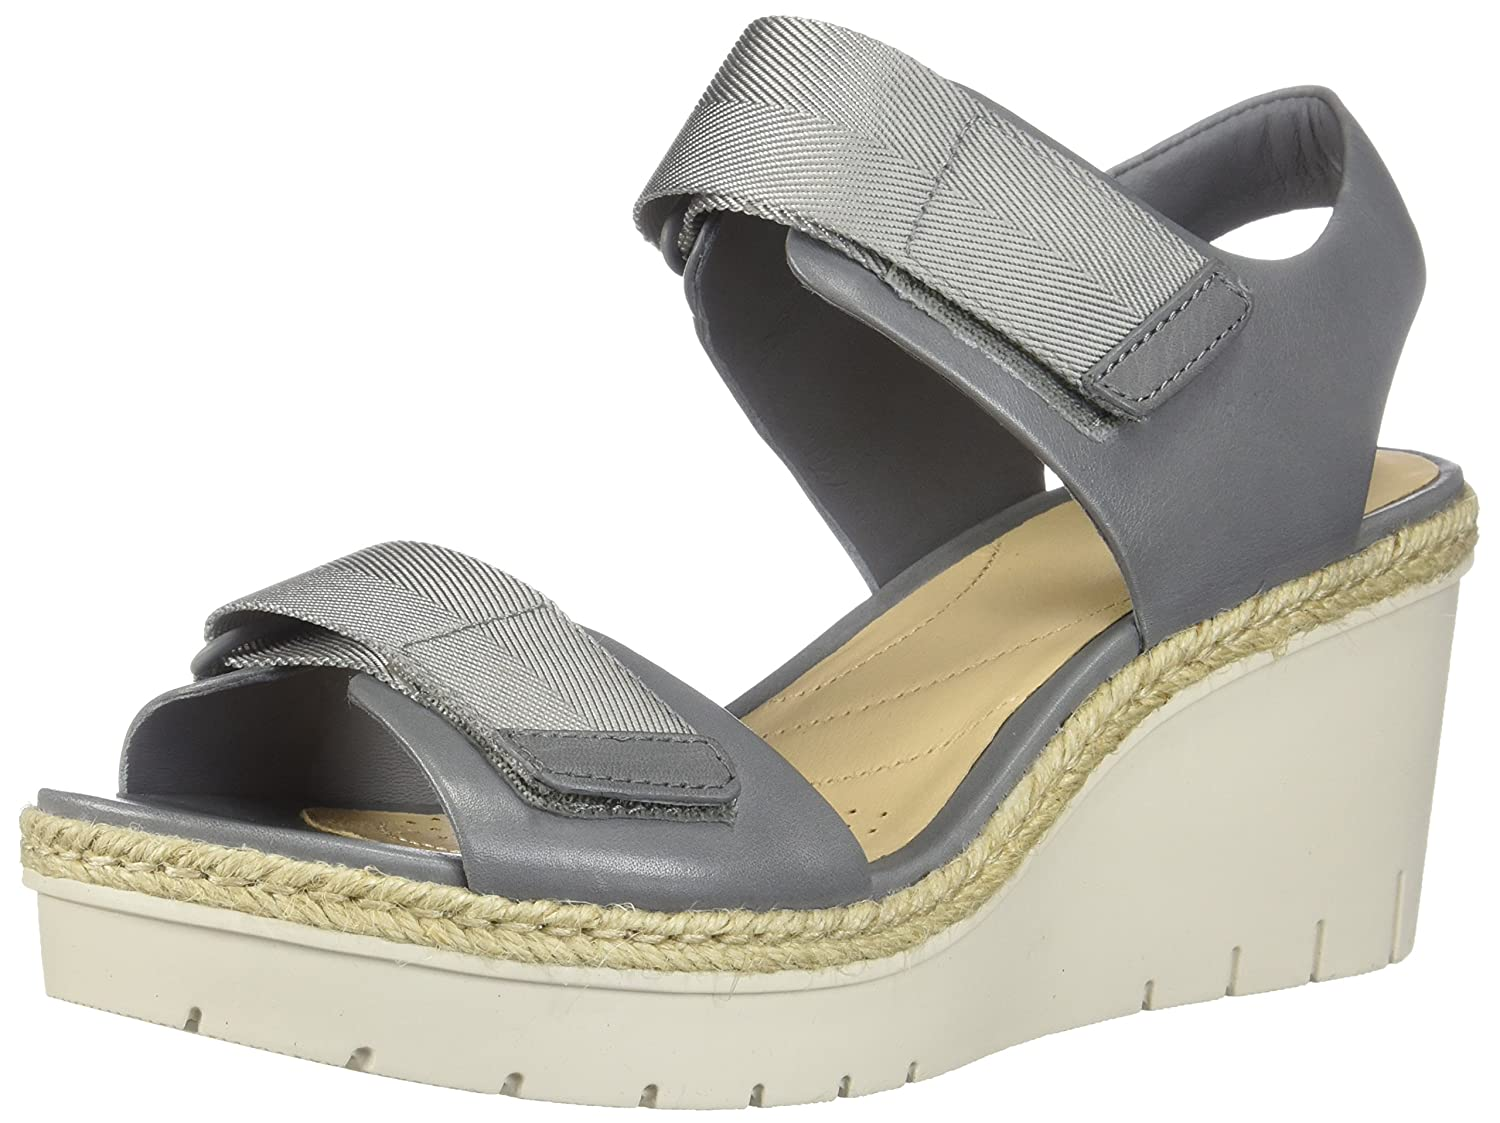 3268d35b778 CLARKS Women's, Palm Shine Wedge Sandals